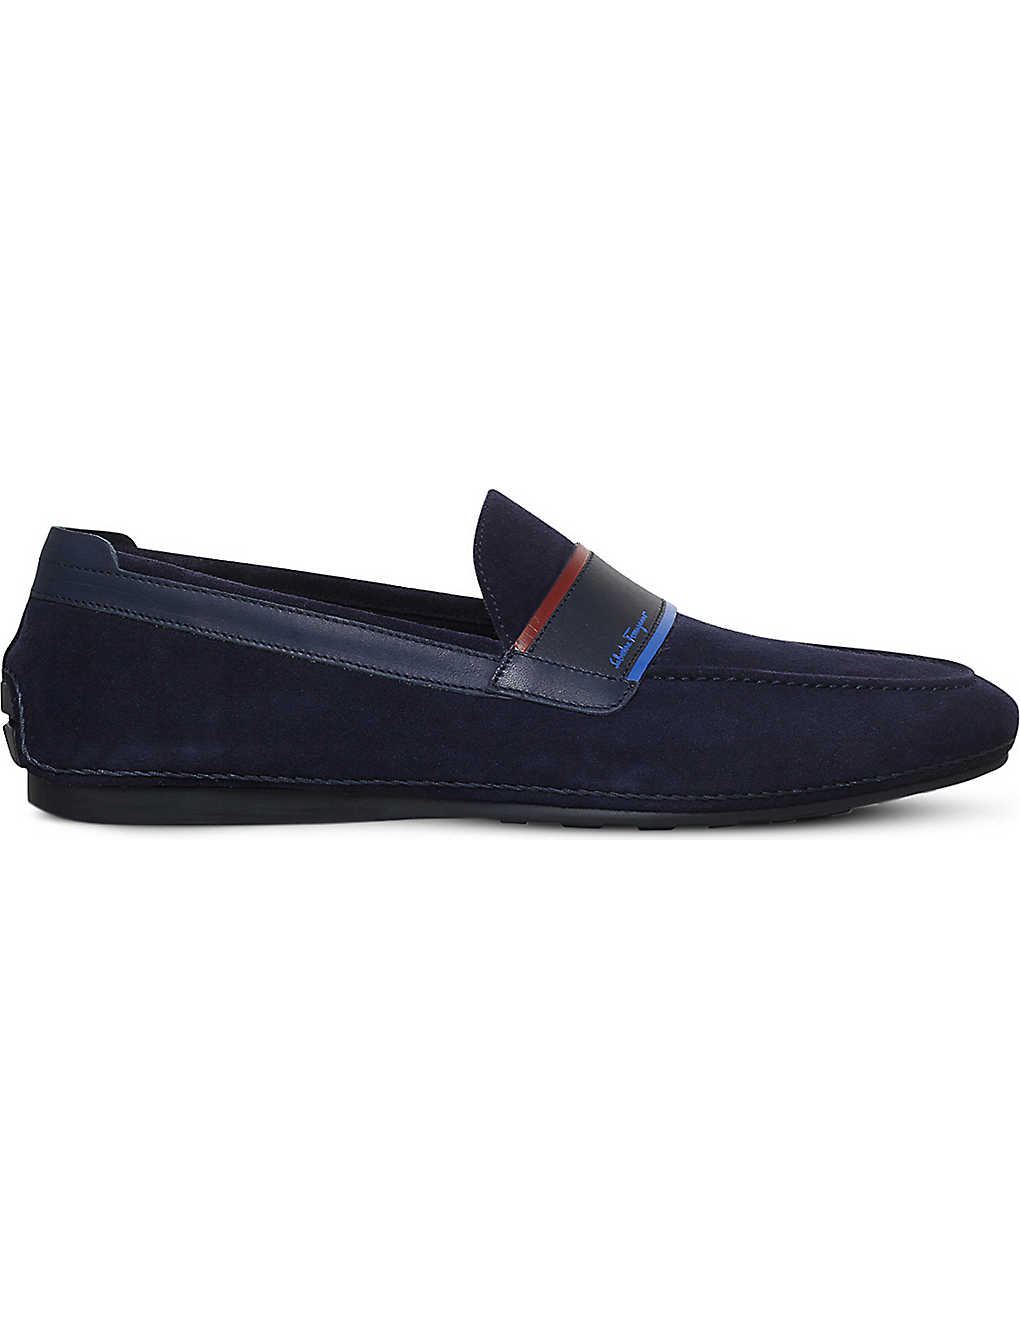 616ef0edc4b5f SALVATORE FERRAGAMO - Florida suede driving shoes | Selfridges.com